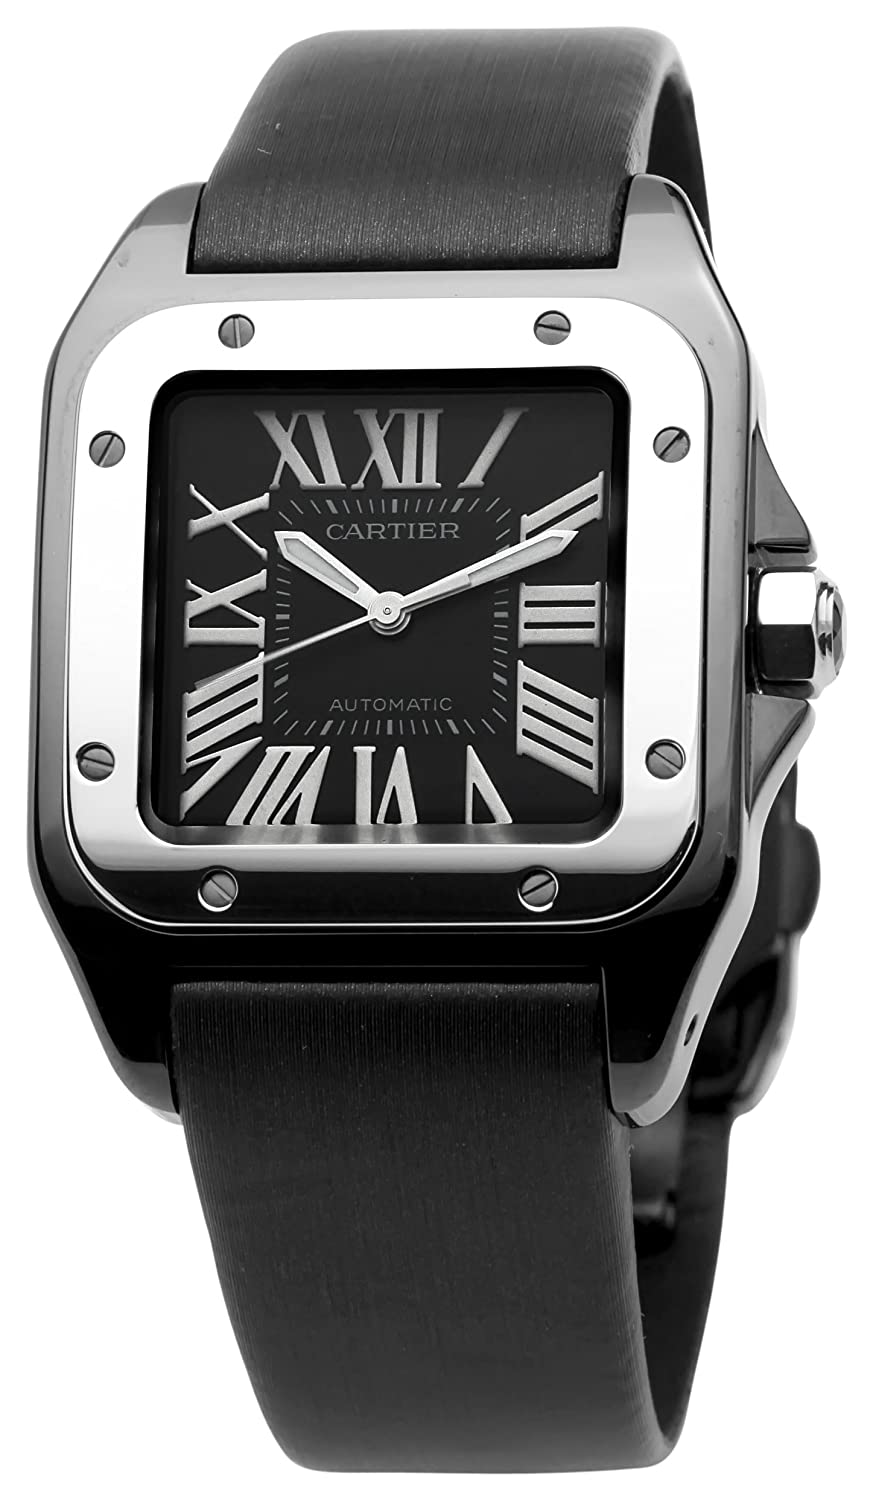 quality perfect tone replica cartier high product santos watches two